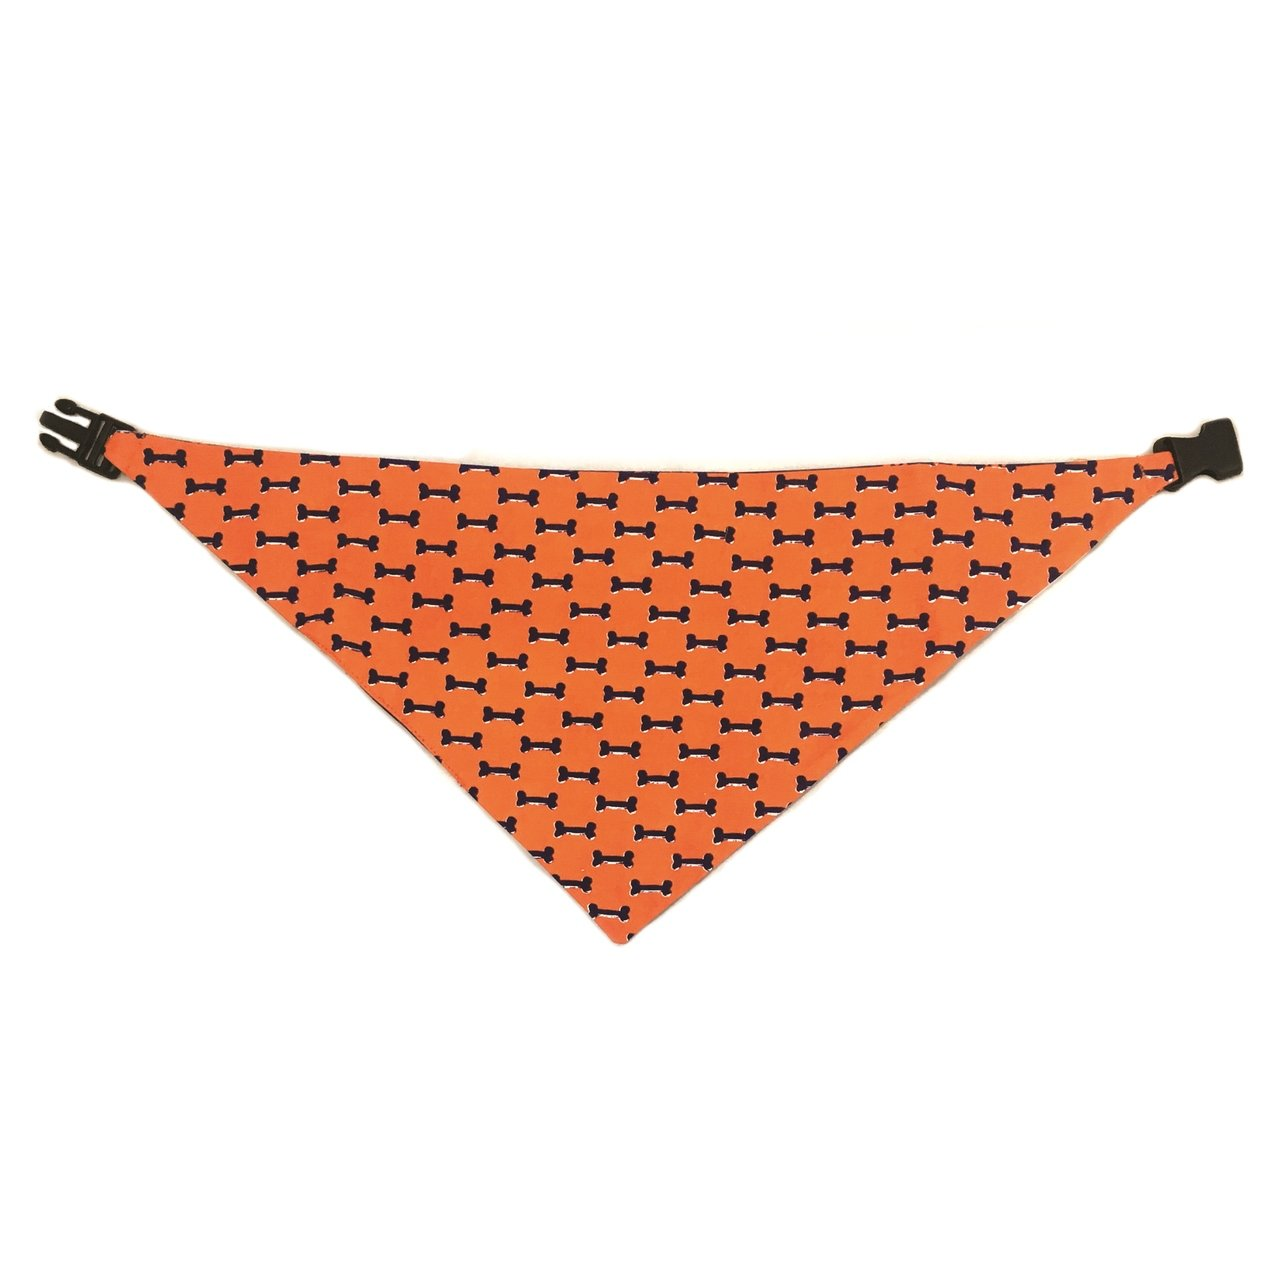 Uptown Pups Reversible Bandana - Blue & Orange - Uptown Pups